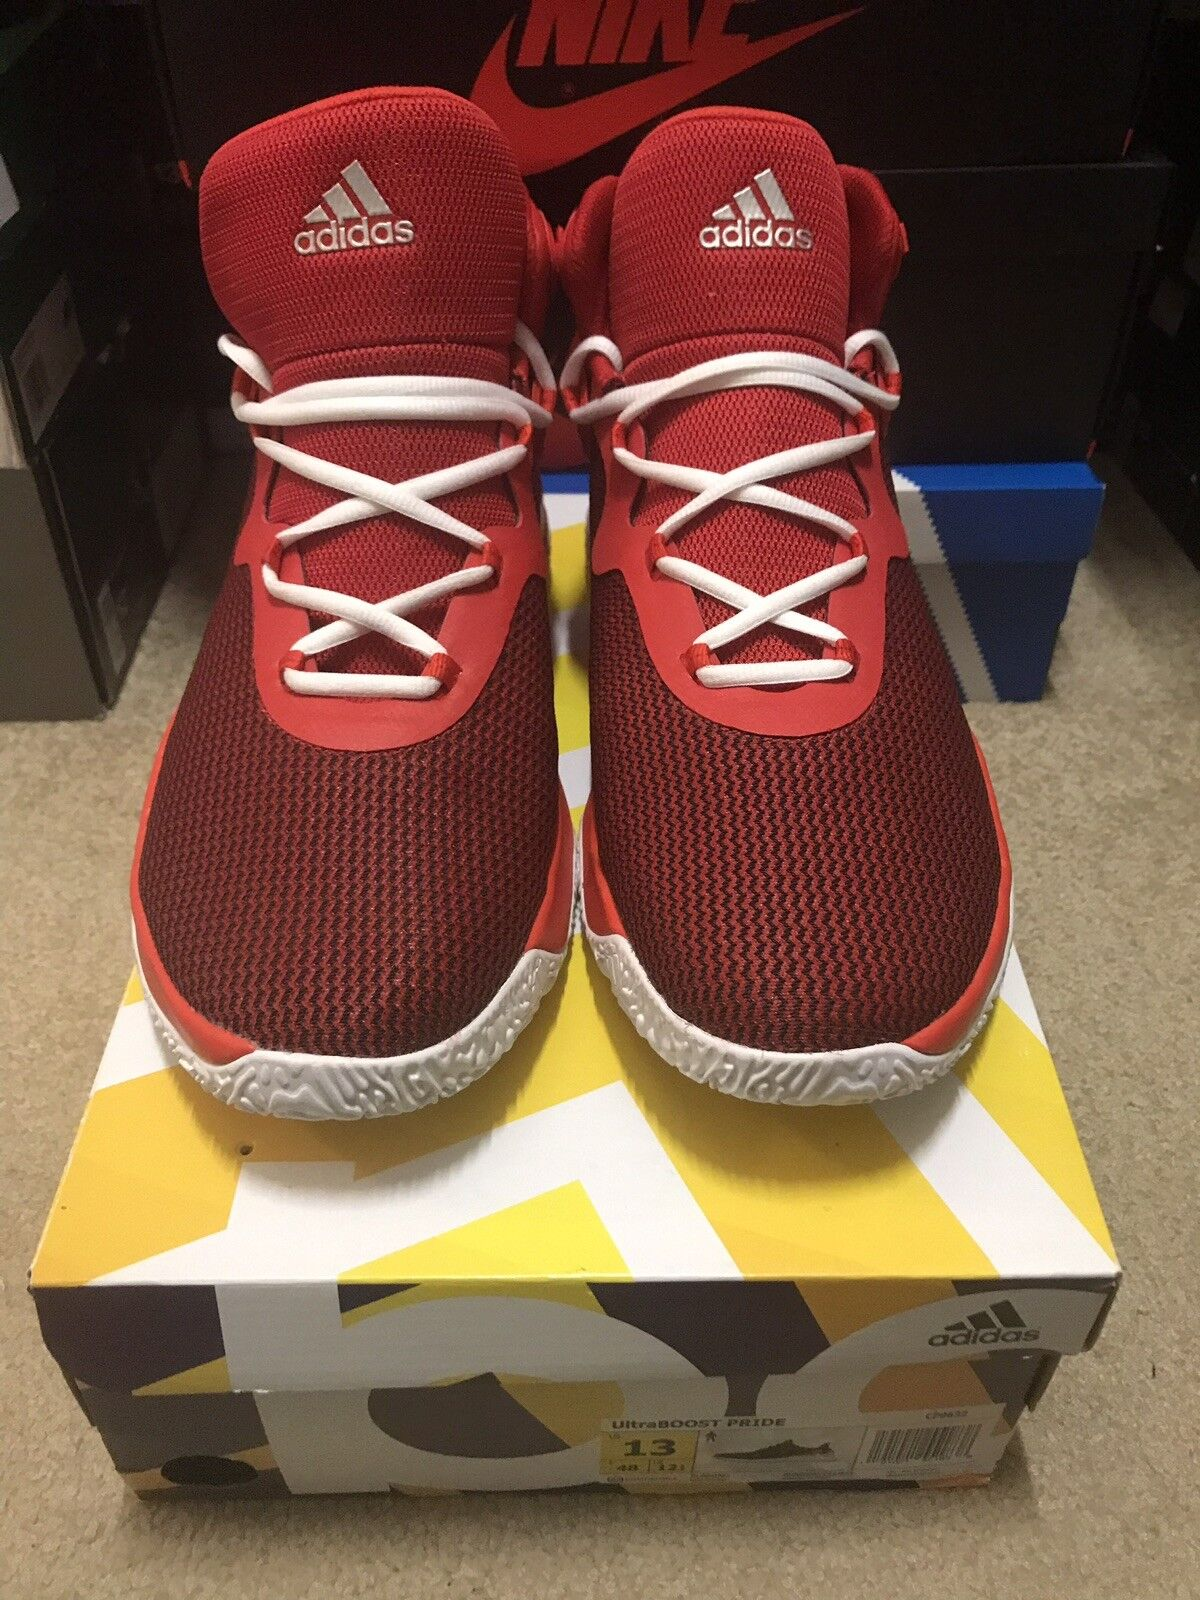 Adidas Explosive Bounce Bounce Bounce Size 13 Ultra Boost